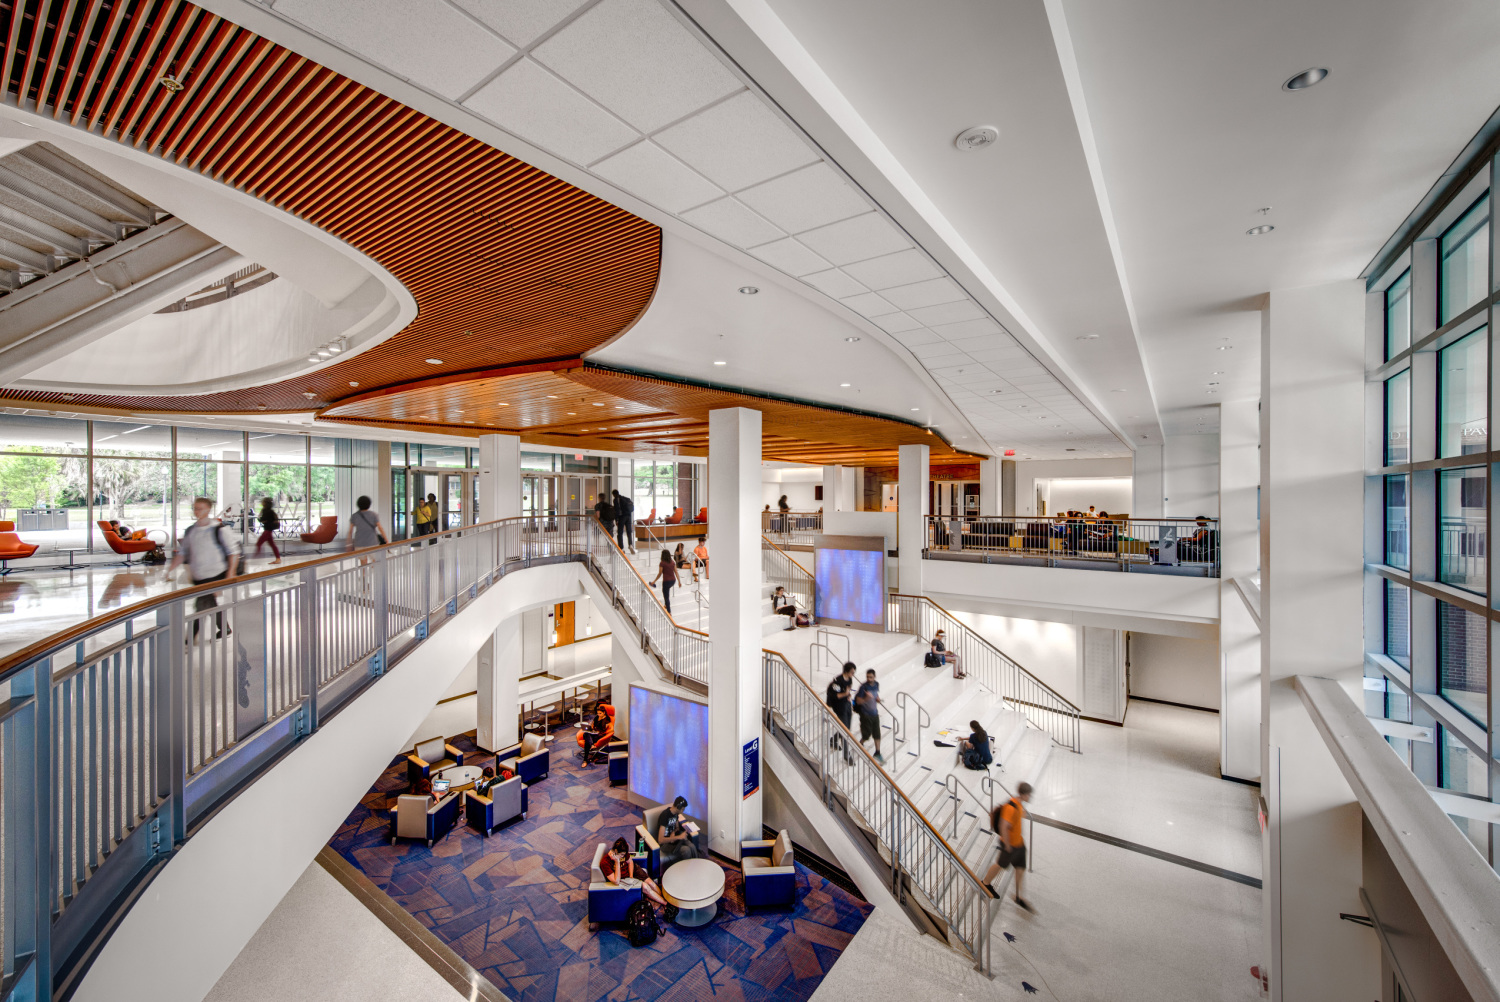 University of florida reitz student union cannondesign - Interior decorator students for hire ...